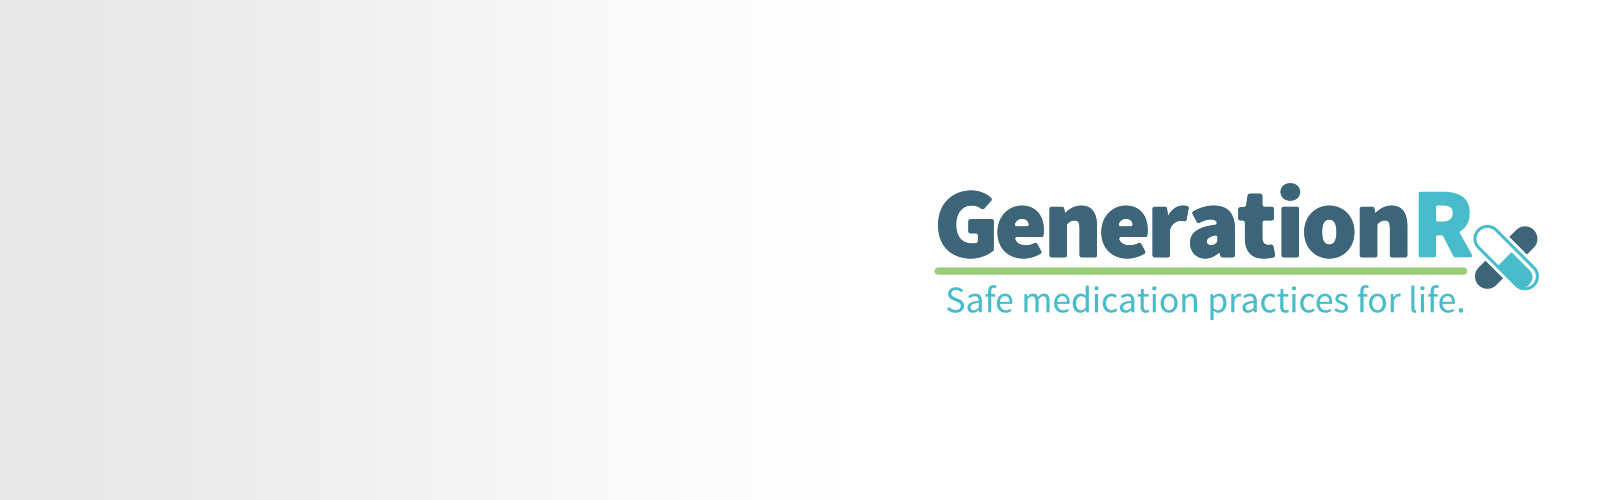 logo that says Generation RX safe medication practices for life